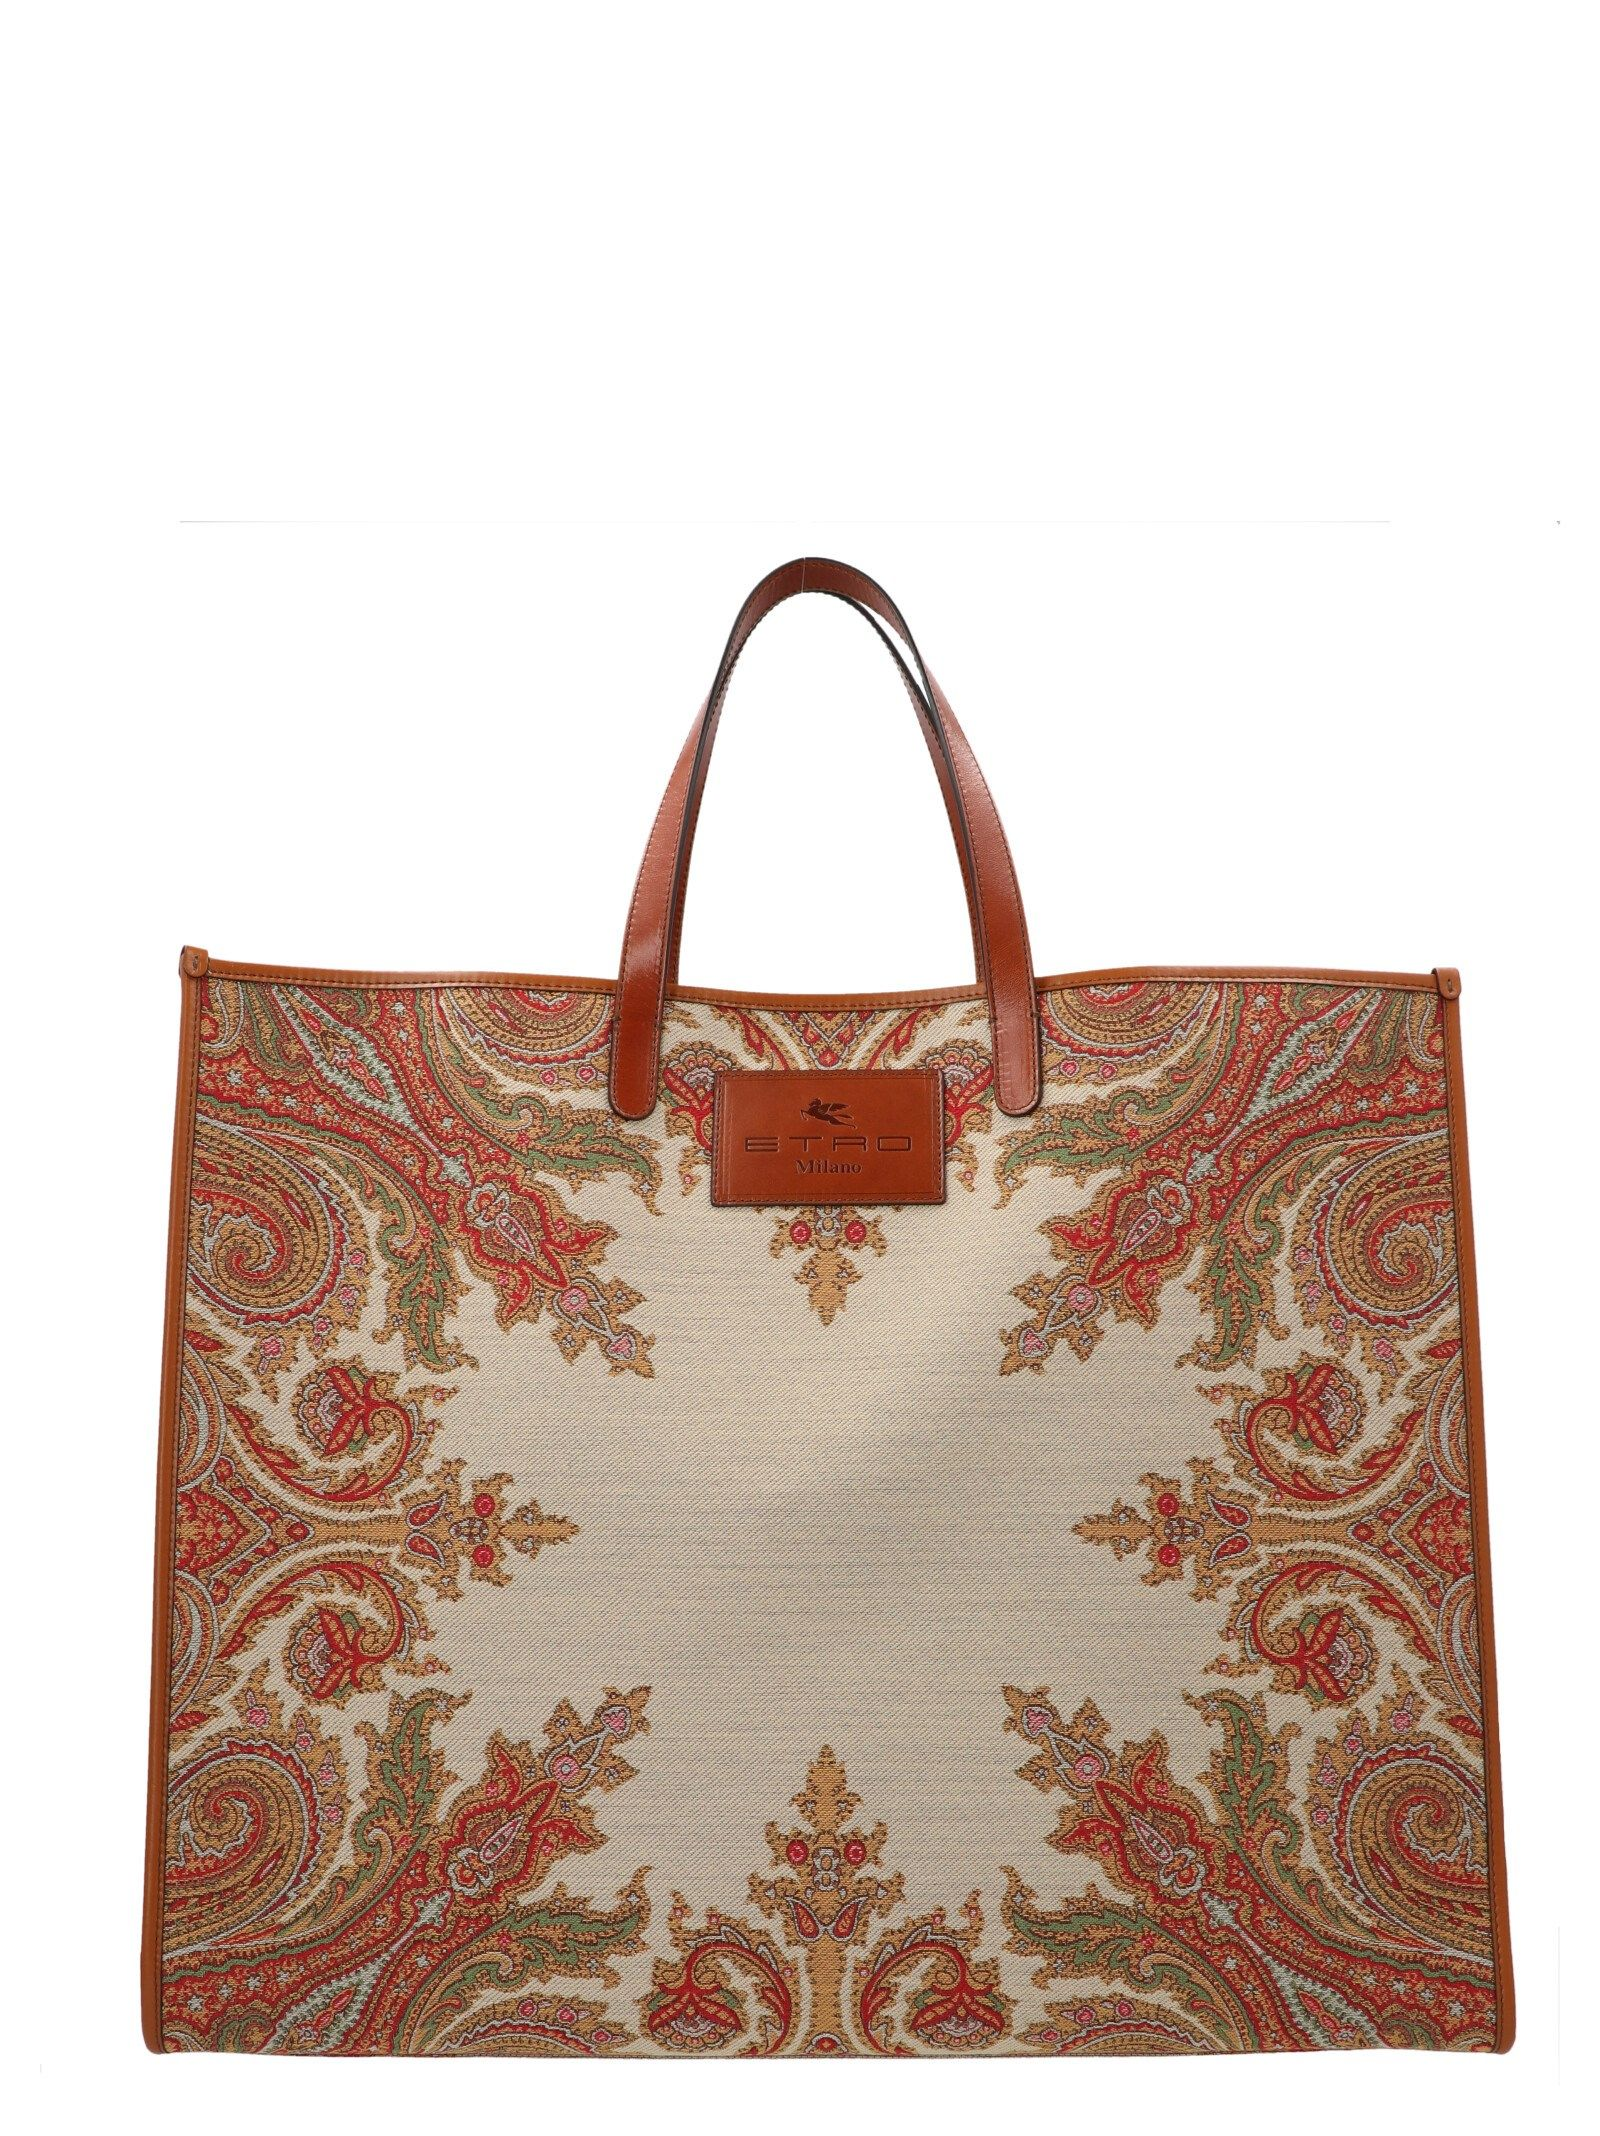 Etro ETRO WOMEN'S 1N39188600800 MULTICOLOR OTHER MATERIALS TOTE